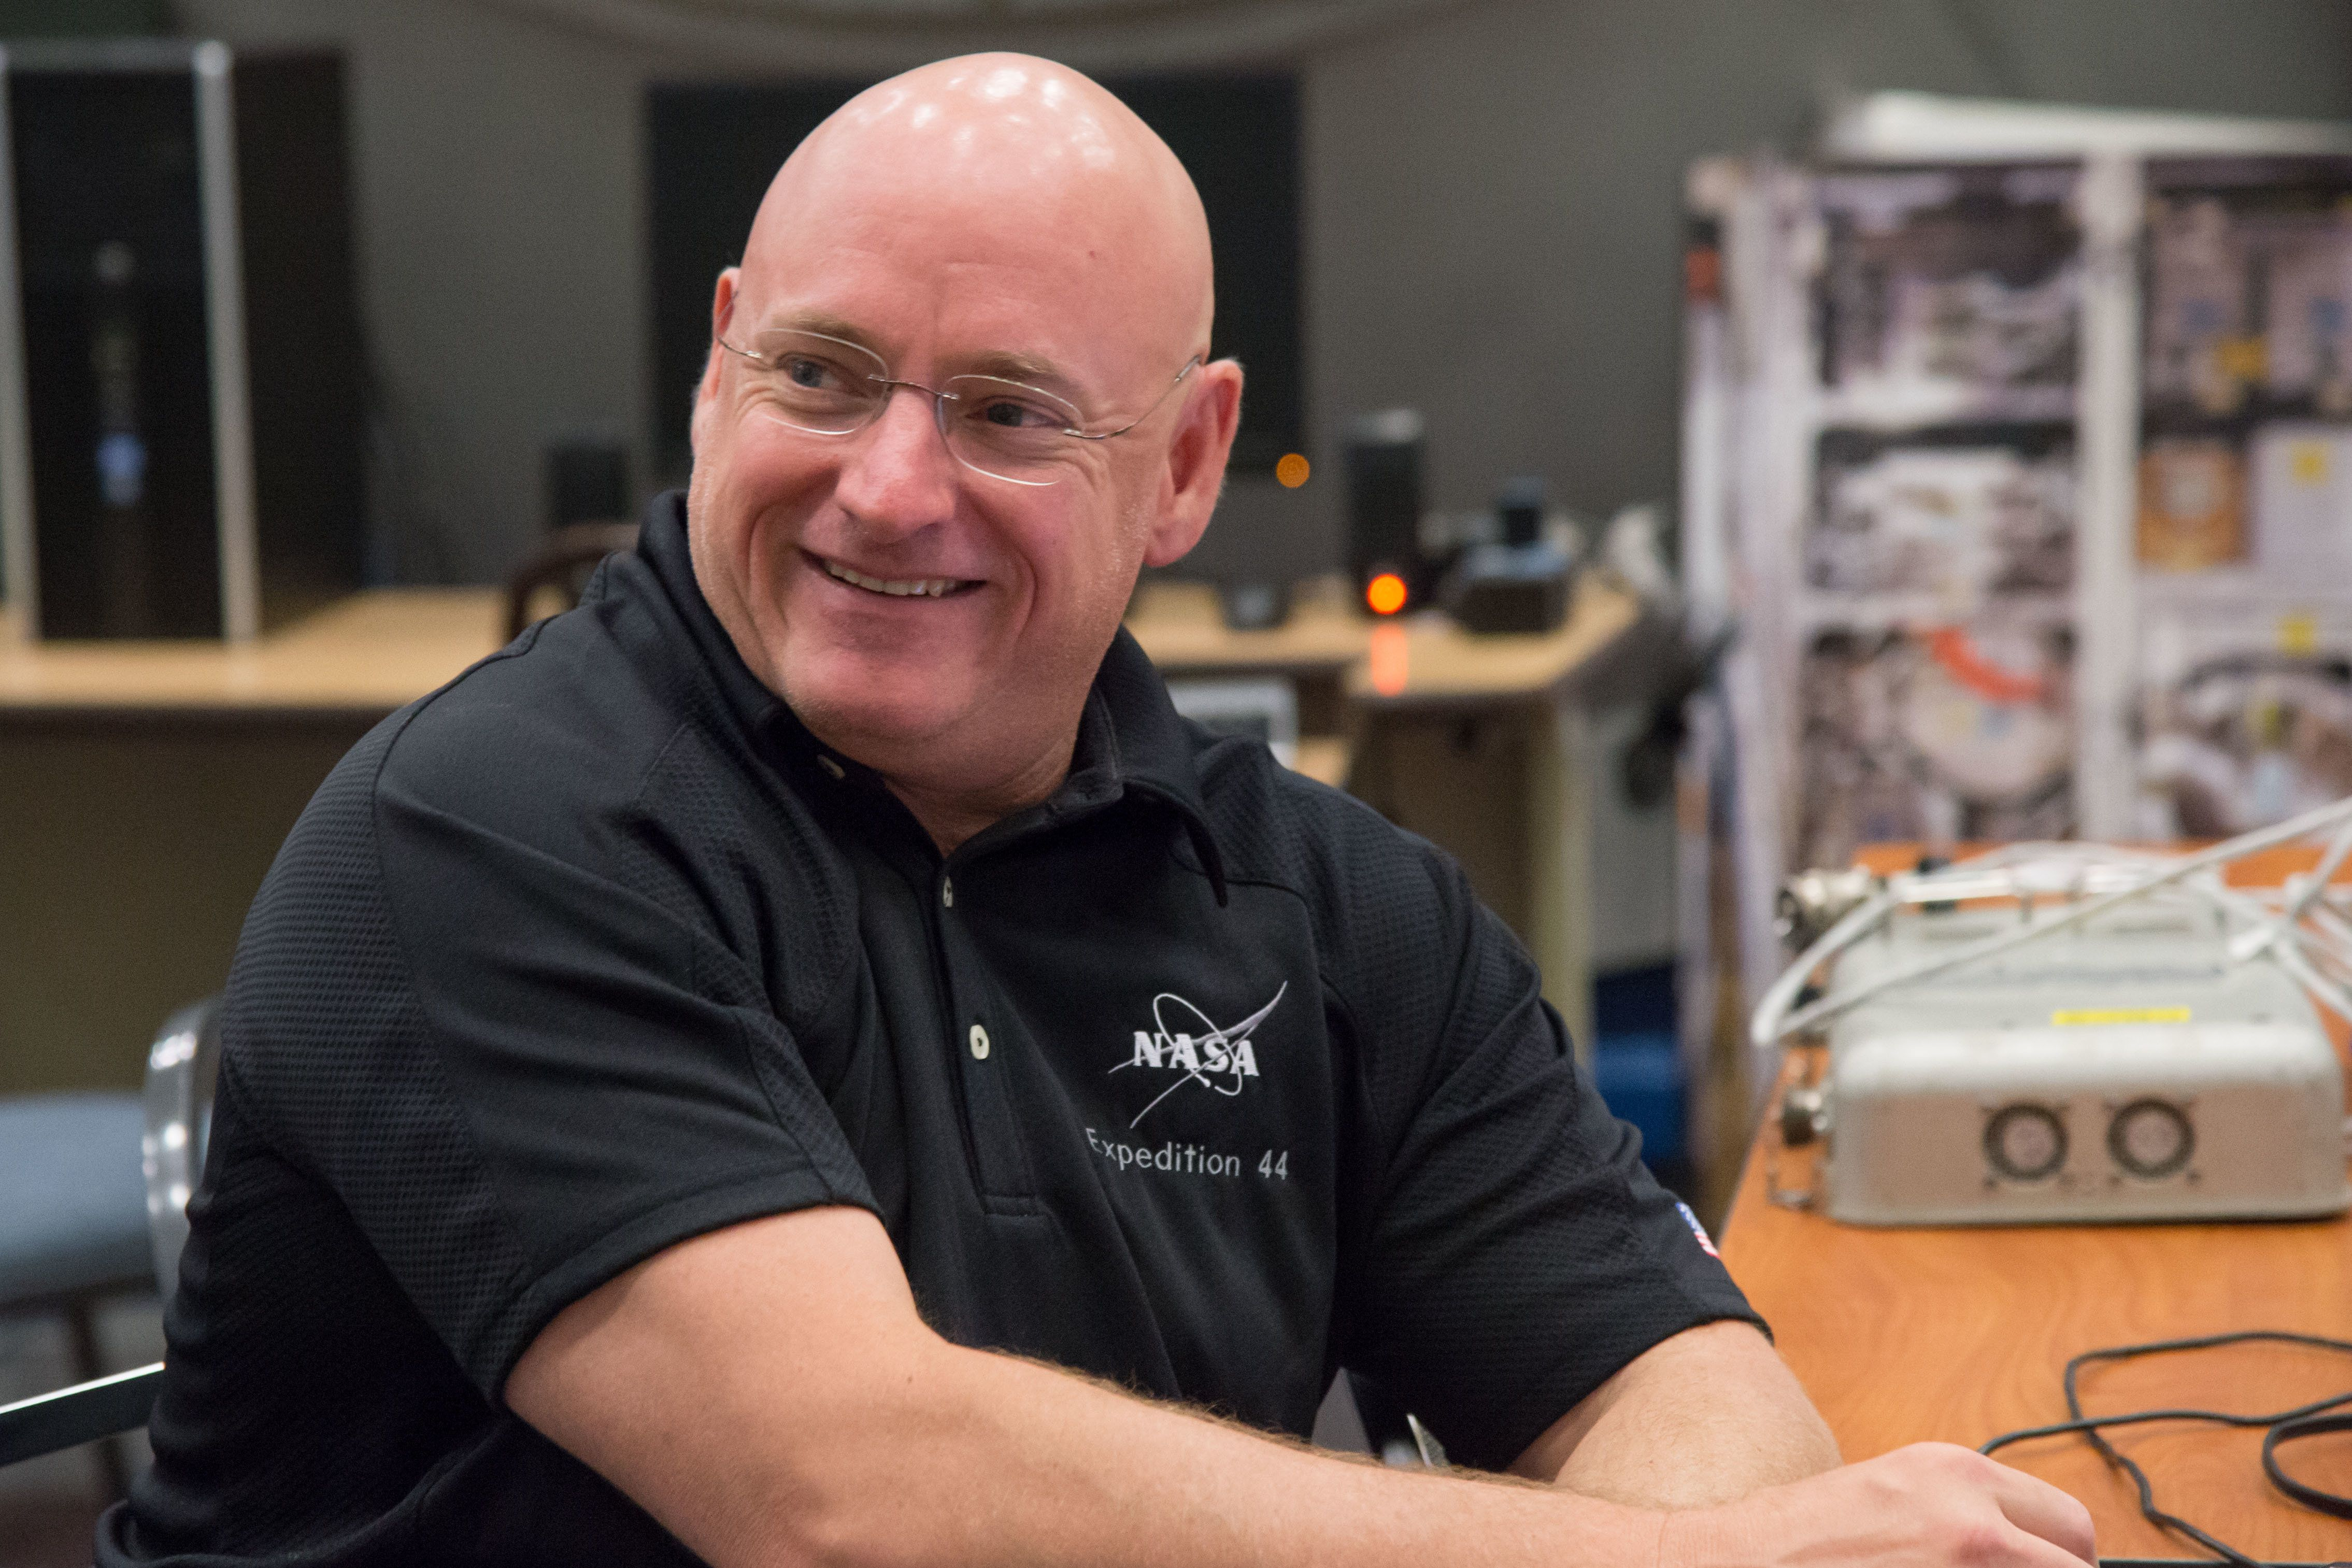 PHOTO DATE: 5-9-13 LOCATION: Bldg. 9NW - ISS Mockups SUBJECT: JSC2013-E-031311 (9 May 2013) --- NASA astronaut Scott Kelly, Expedition 43 flight engineer, is pictured during a routine operations training session in the Space Vehicle Mock-up Facility at NASA's Johnson Space Center. Photo credit: NASA